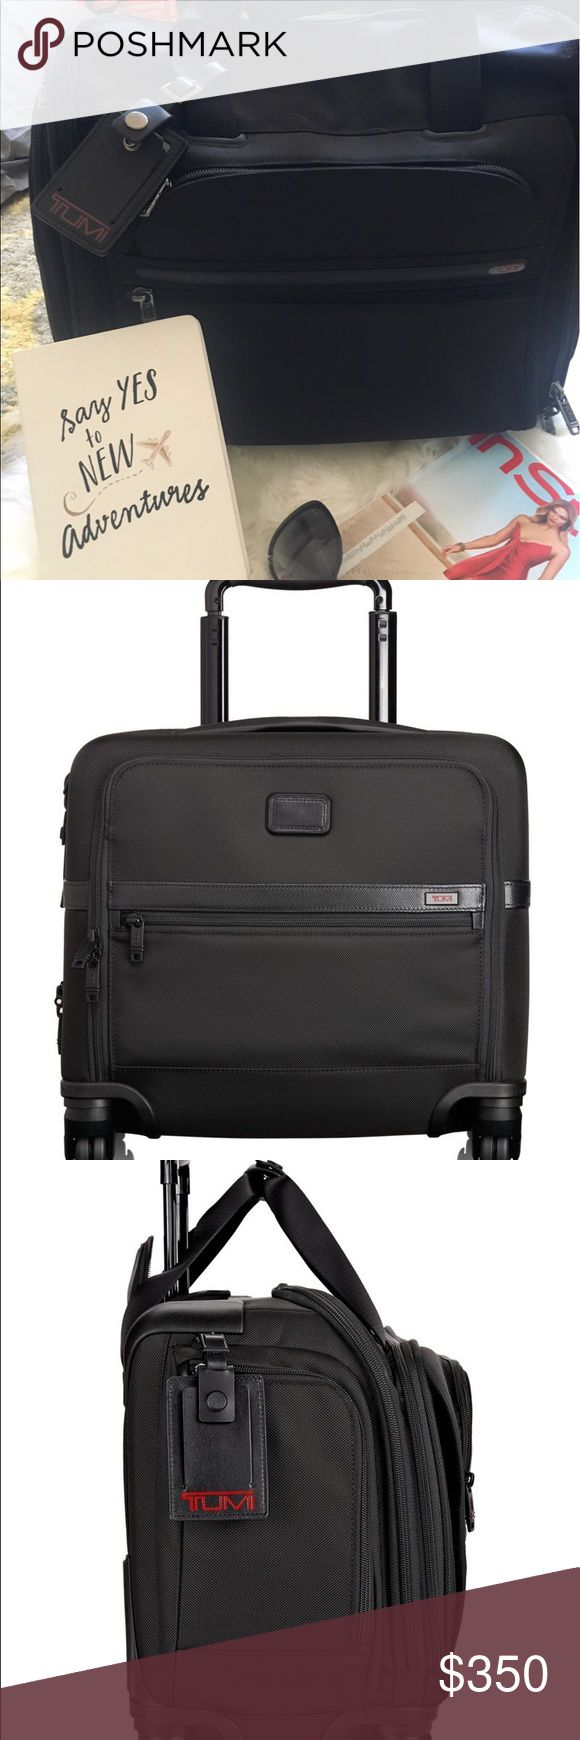 """EUC Tumi 4-wheel Compact Brief 🎉Great Price 🎉Are u looking for a timeless piece of luggage for you next business trip? This Tumi 4-Wheel Compact Brief is perfect for a carry-on luggage piece. The professional picture is the closest comparable piece. Dimensions are 19"""" long 13"""" tall and 8"""" wide. The handle expands 27"""" high. There are 2 side zipper compartments, 2 long zipper compartment on the inside with 2 inner slide pockets and 2 zipper parts on the front. Feel free to ask questions…"""